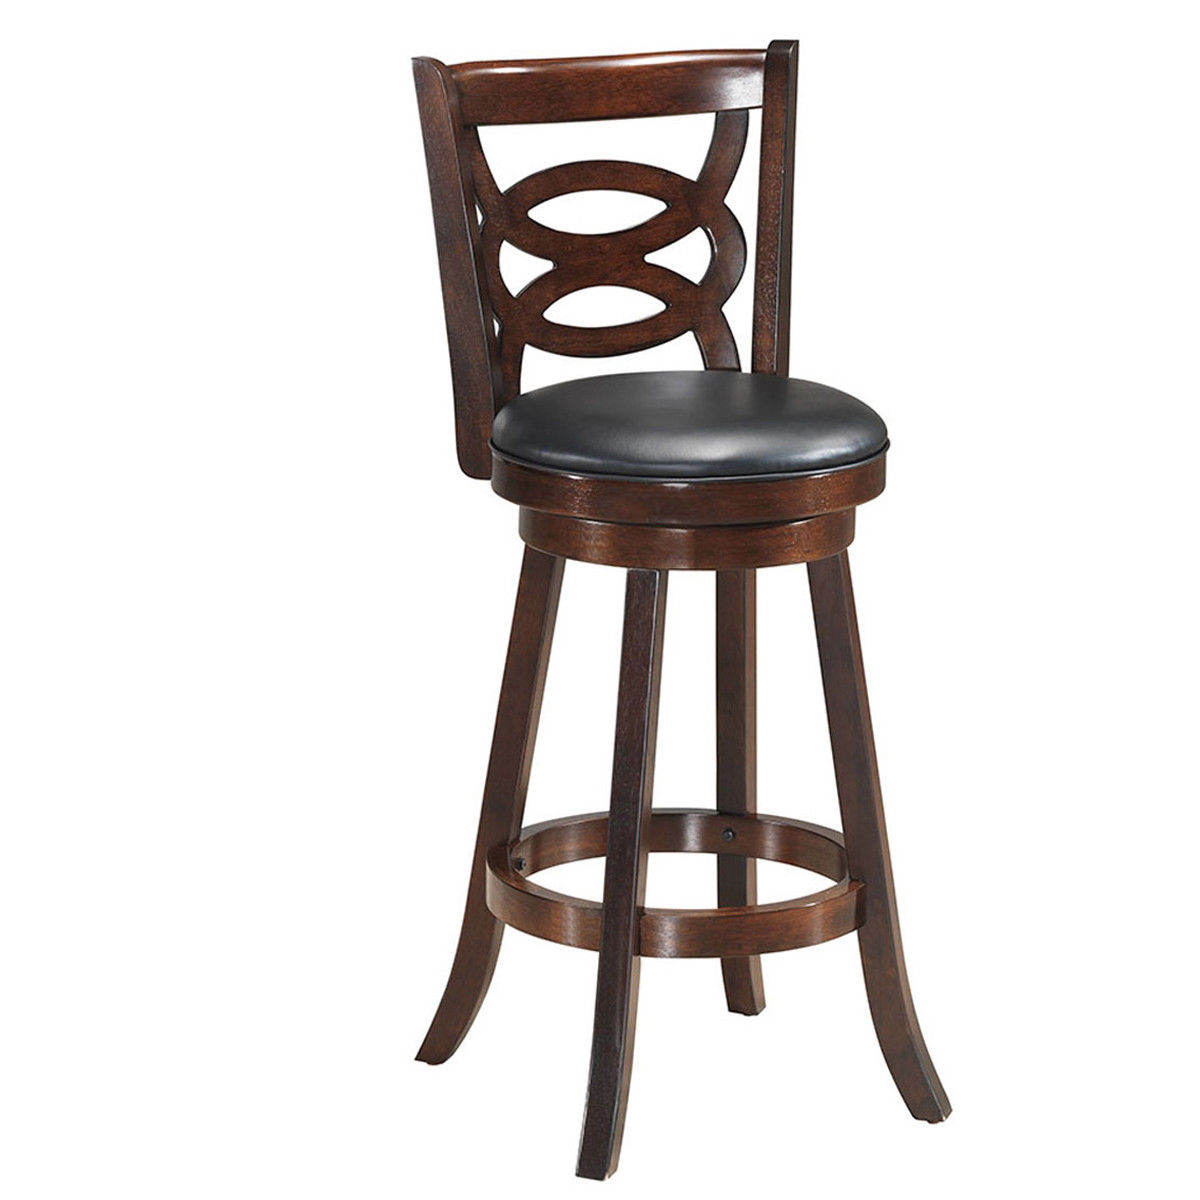 Costway Swivel Stool 29'' Bar Height Upholstered Seat Dining Chair Home Kitchen Espresso